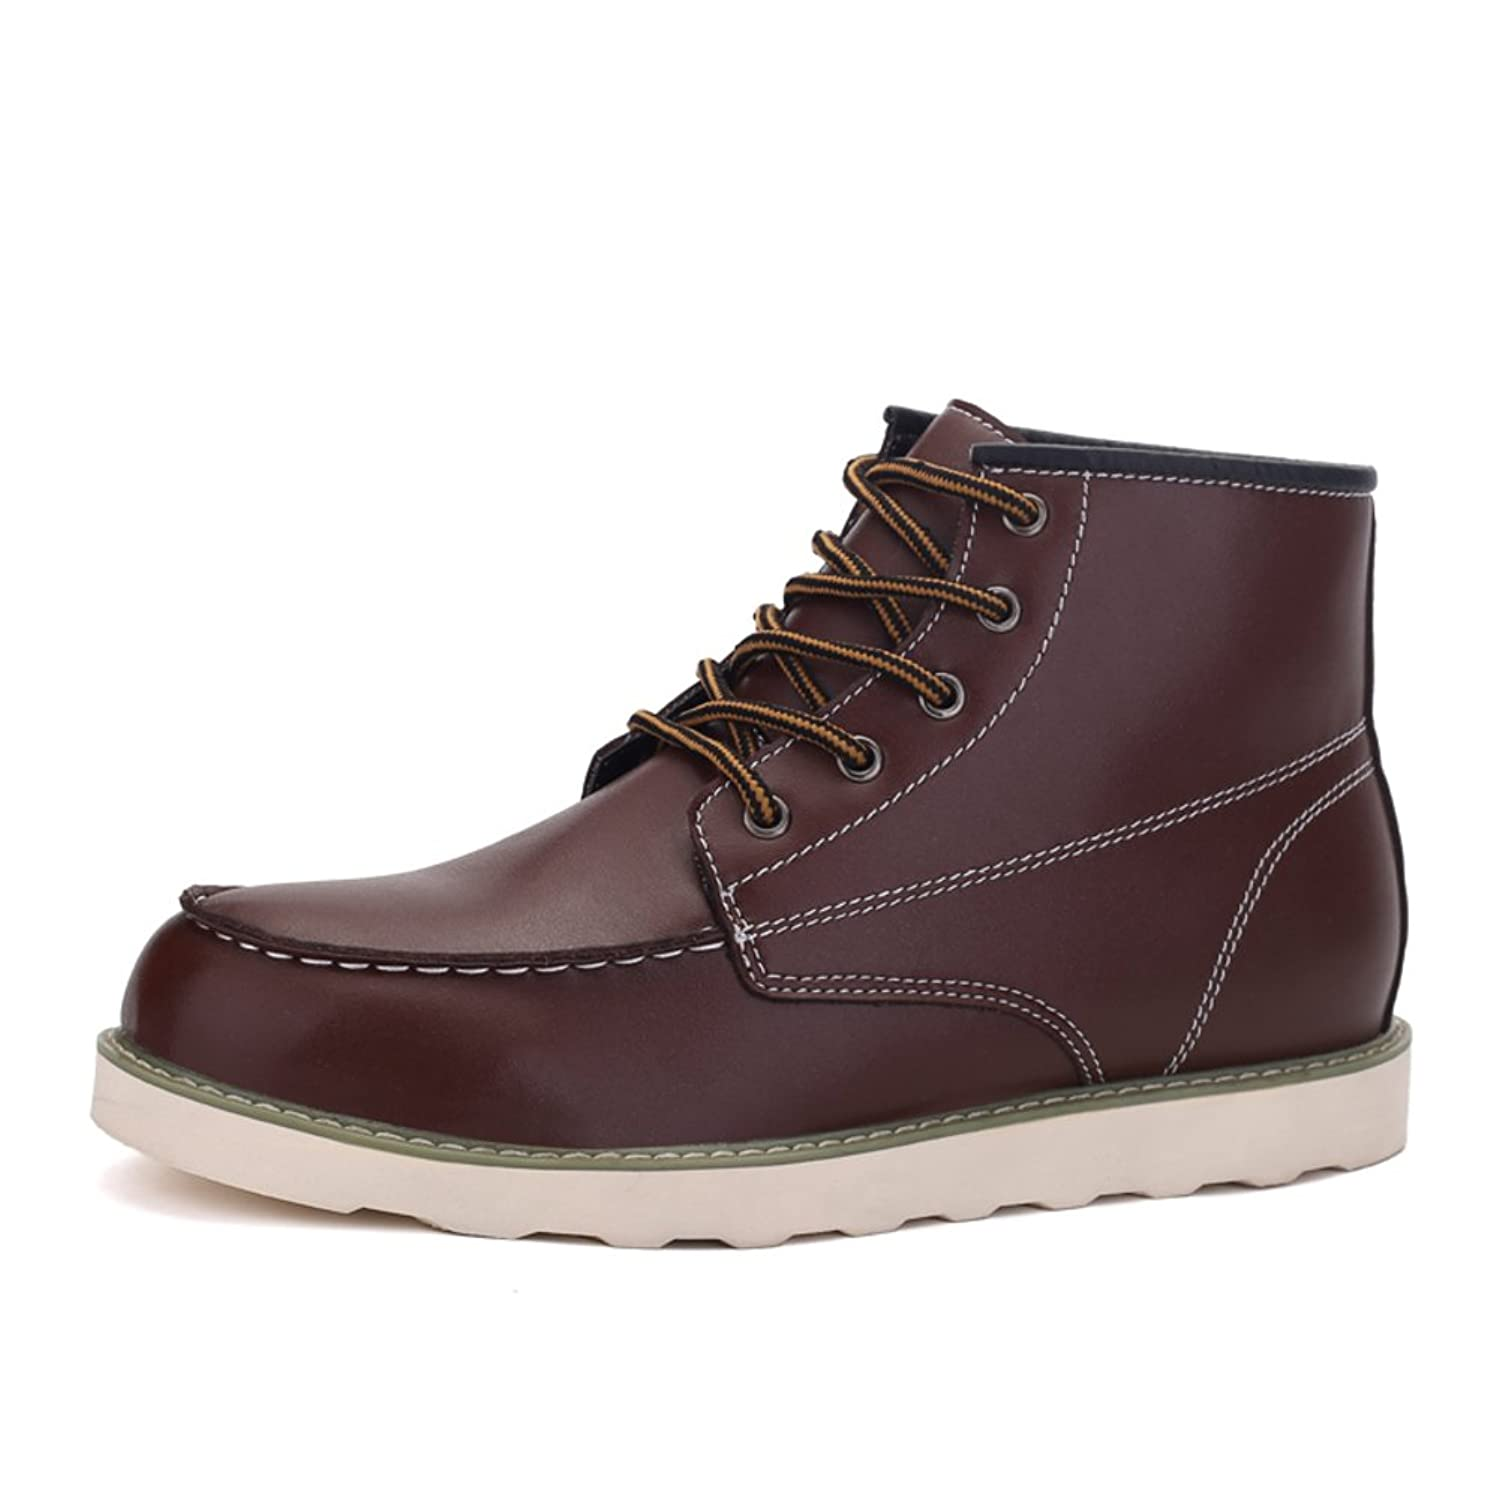 Martin fashion boots/Autumn mens casual shoes/Short tube currents high help shoes/ desert boots with round head